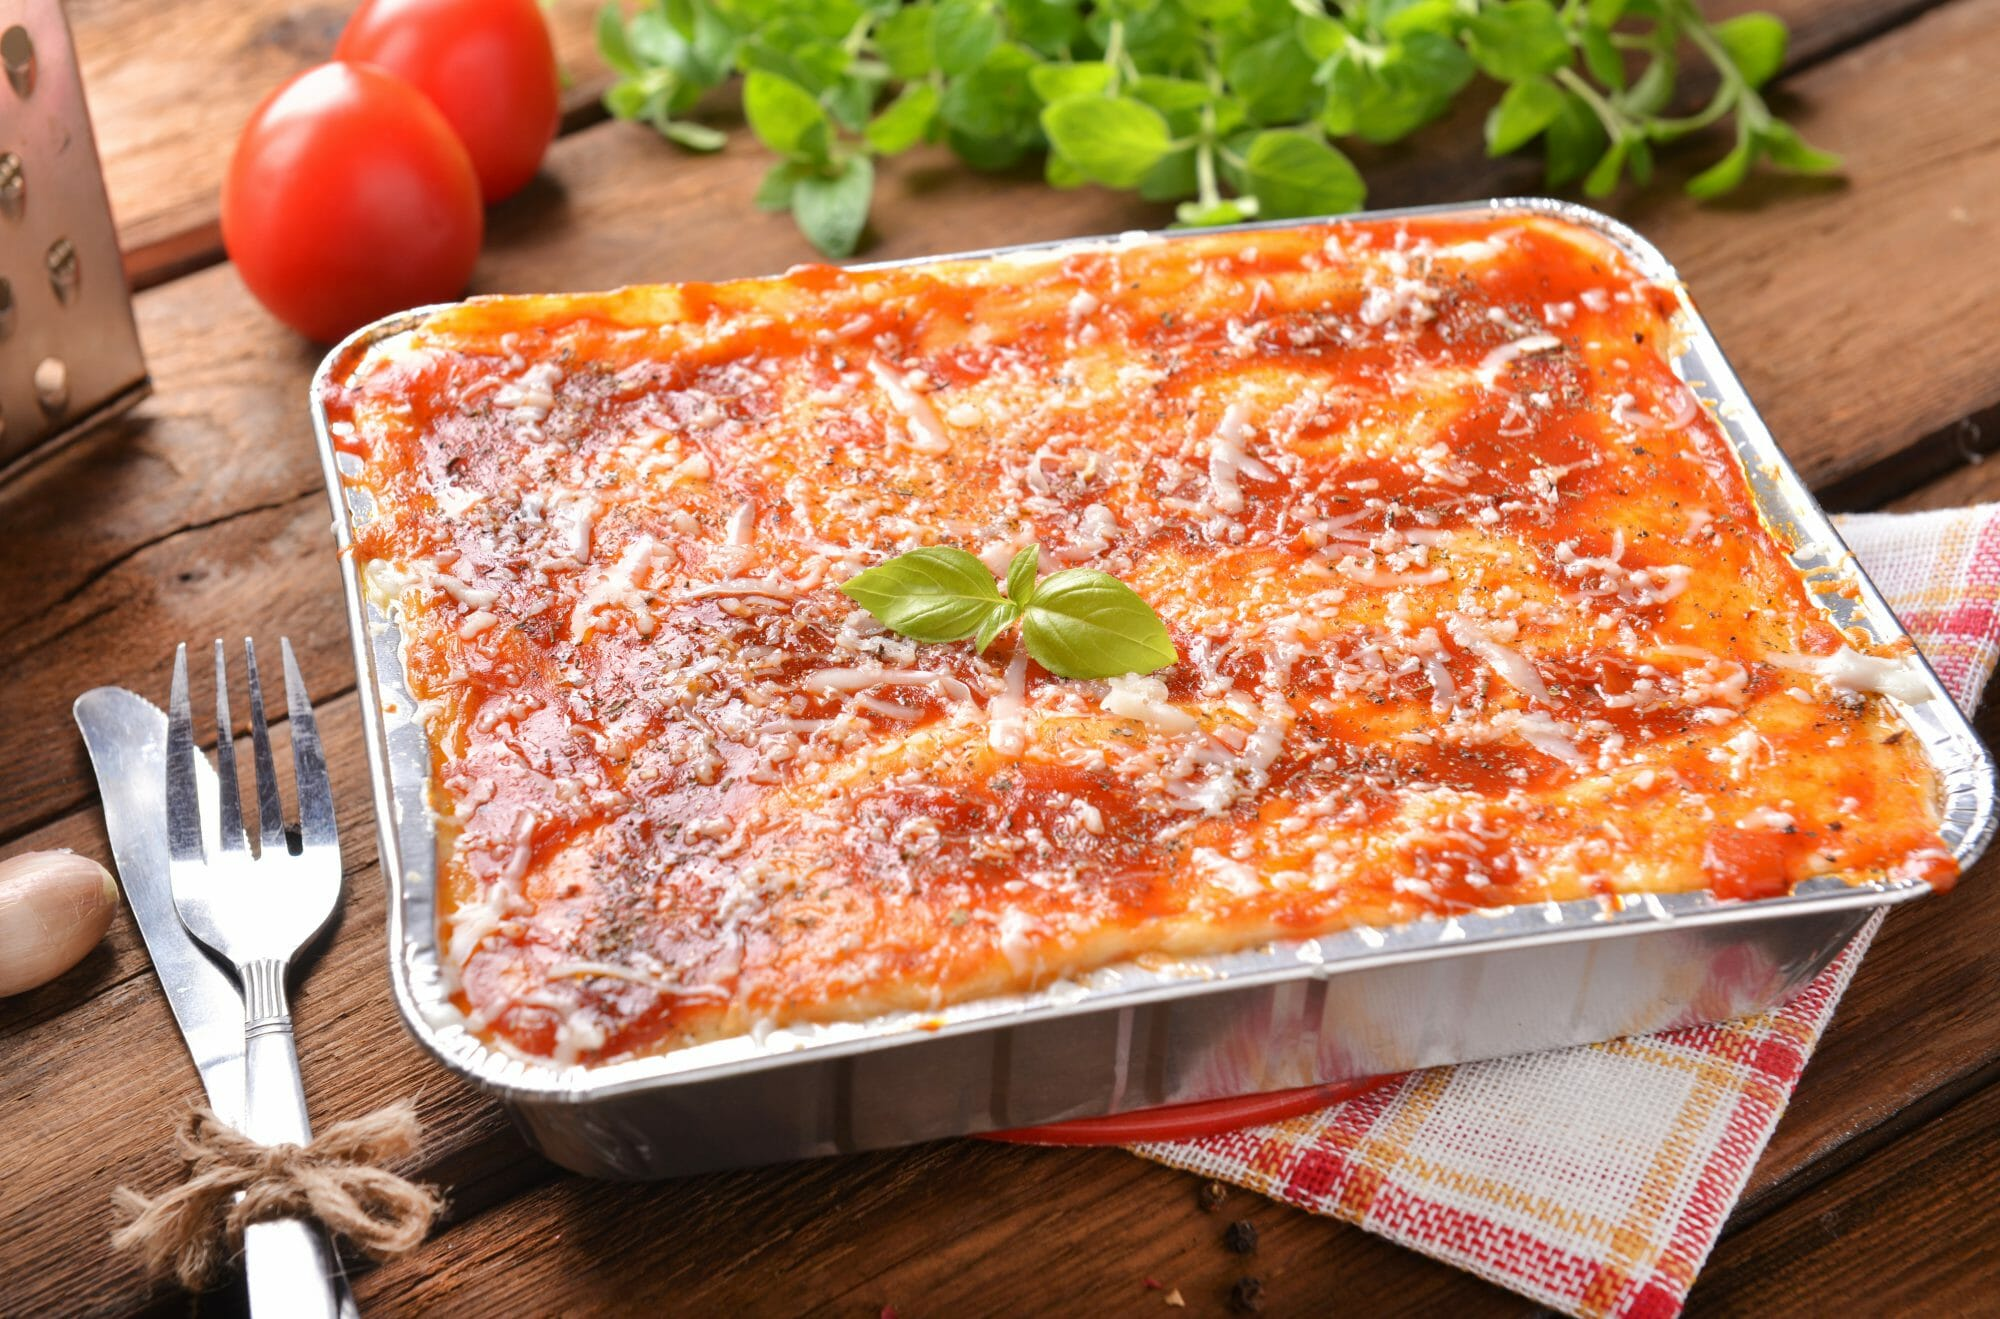 Costco Frozen Lasagna